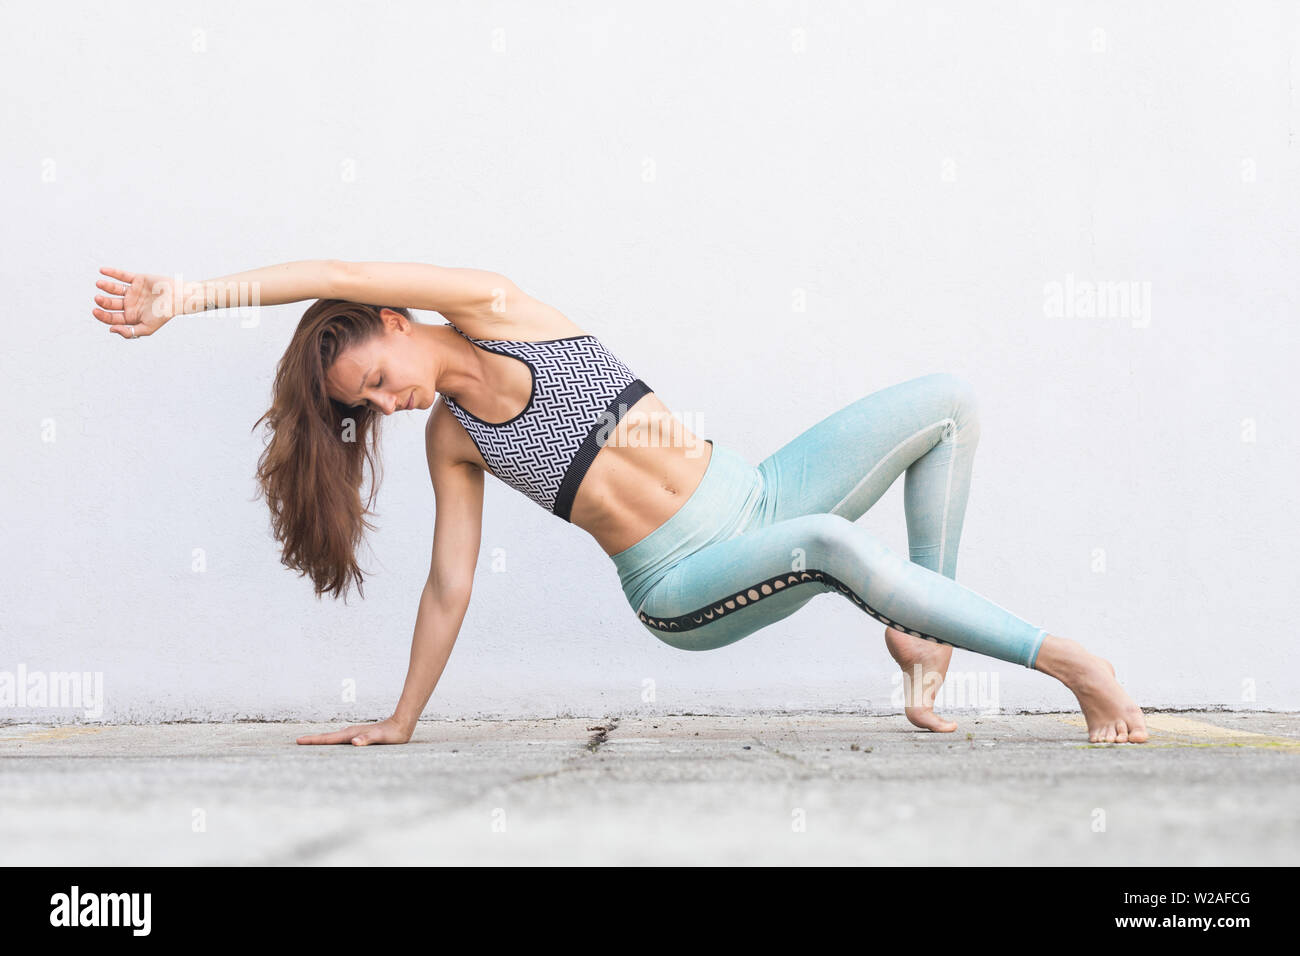 Fit sporty active girl in fashion sportswear doing yoga fitness exercise in front of gray wall, outdoor sports, urban style Stock Photo